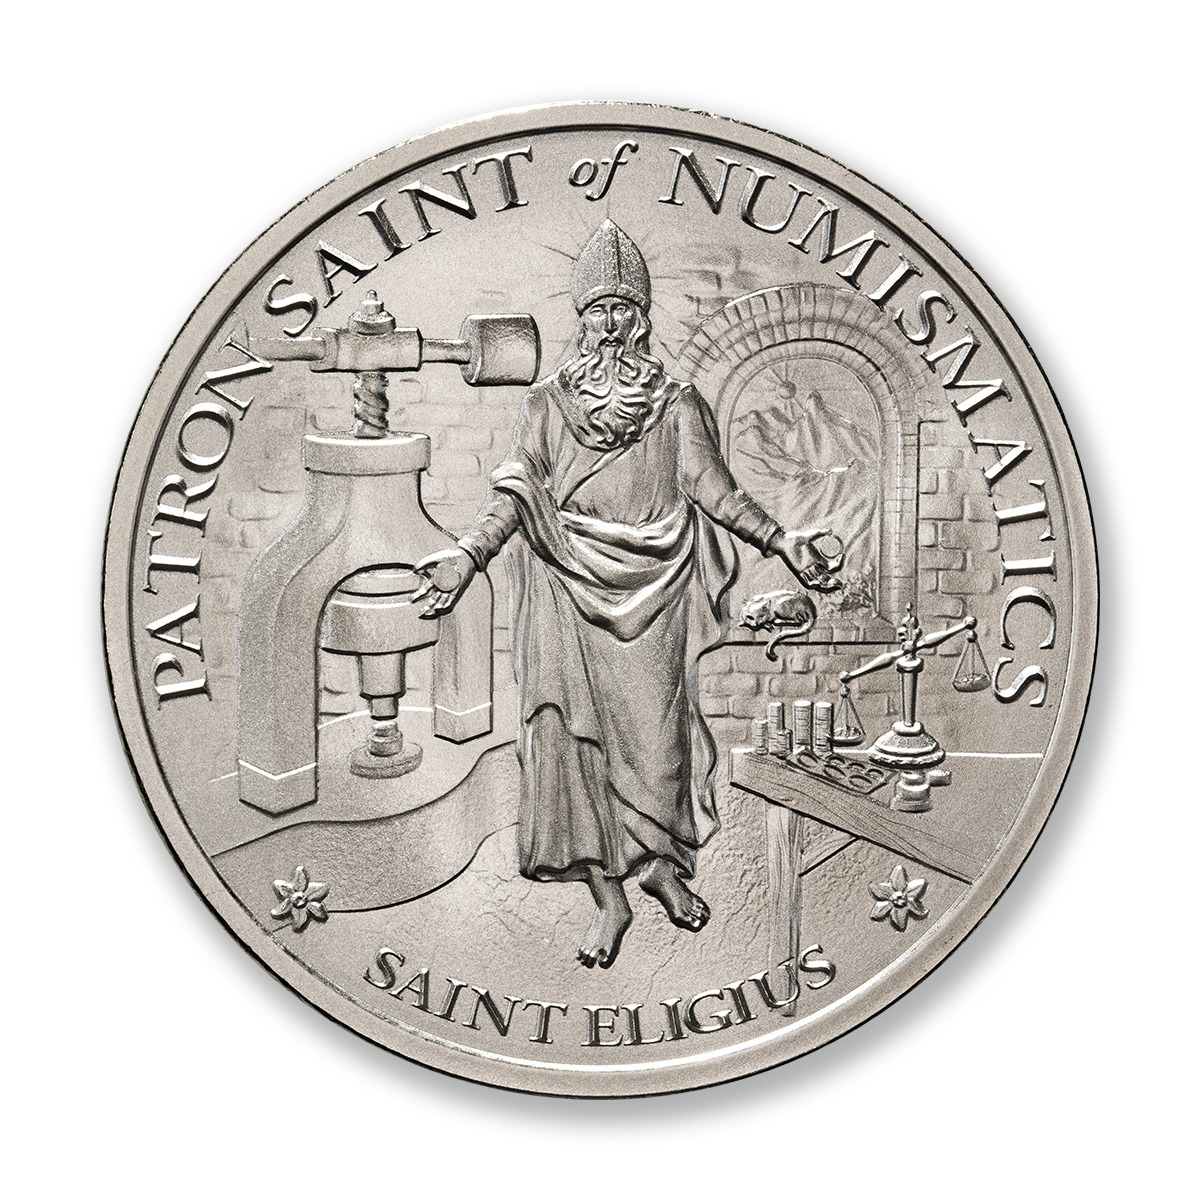 SAINT ELIGIUS – 2 TROY OUNCE – 50MM – LIMITED MINTAGE: 500